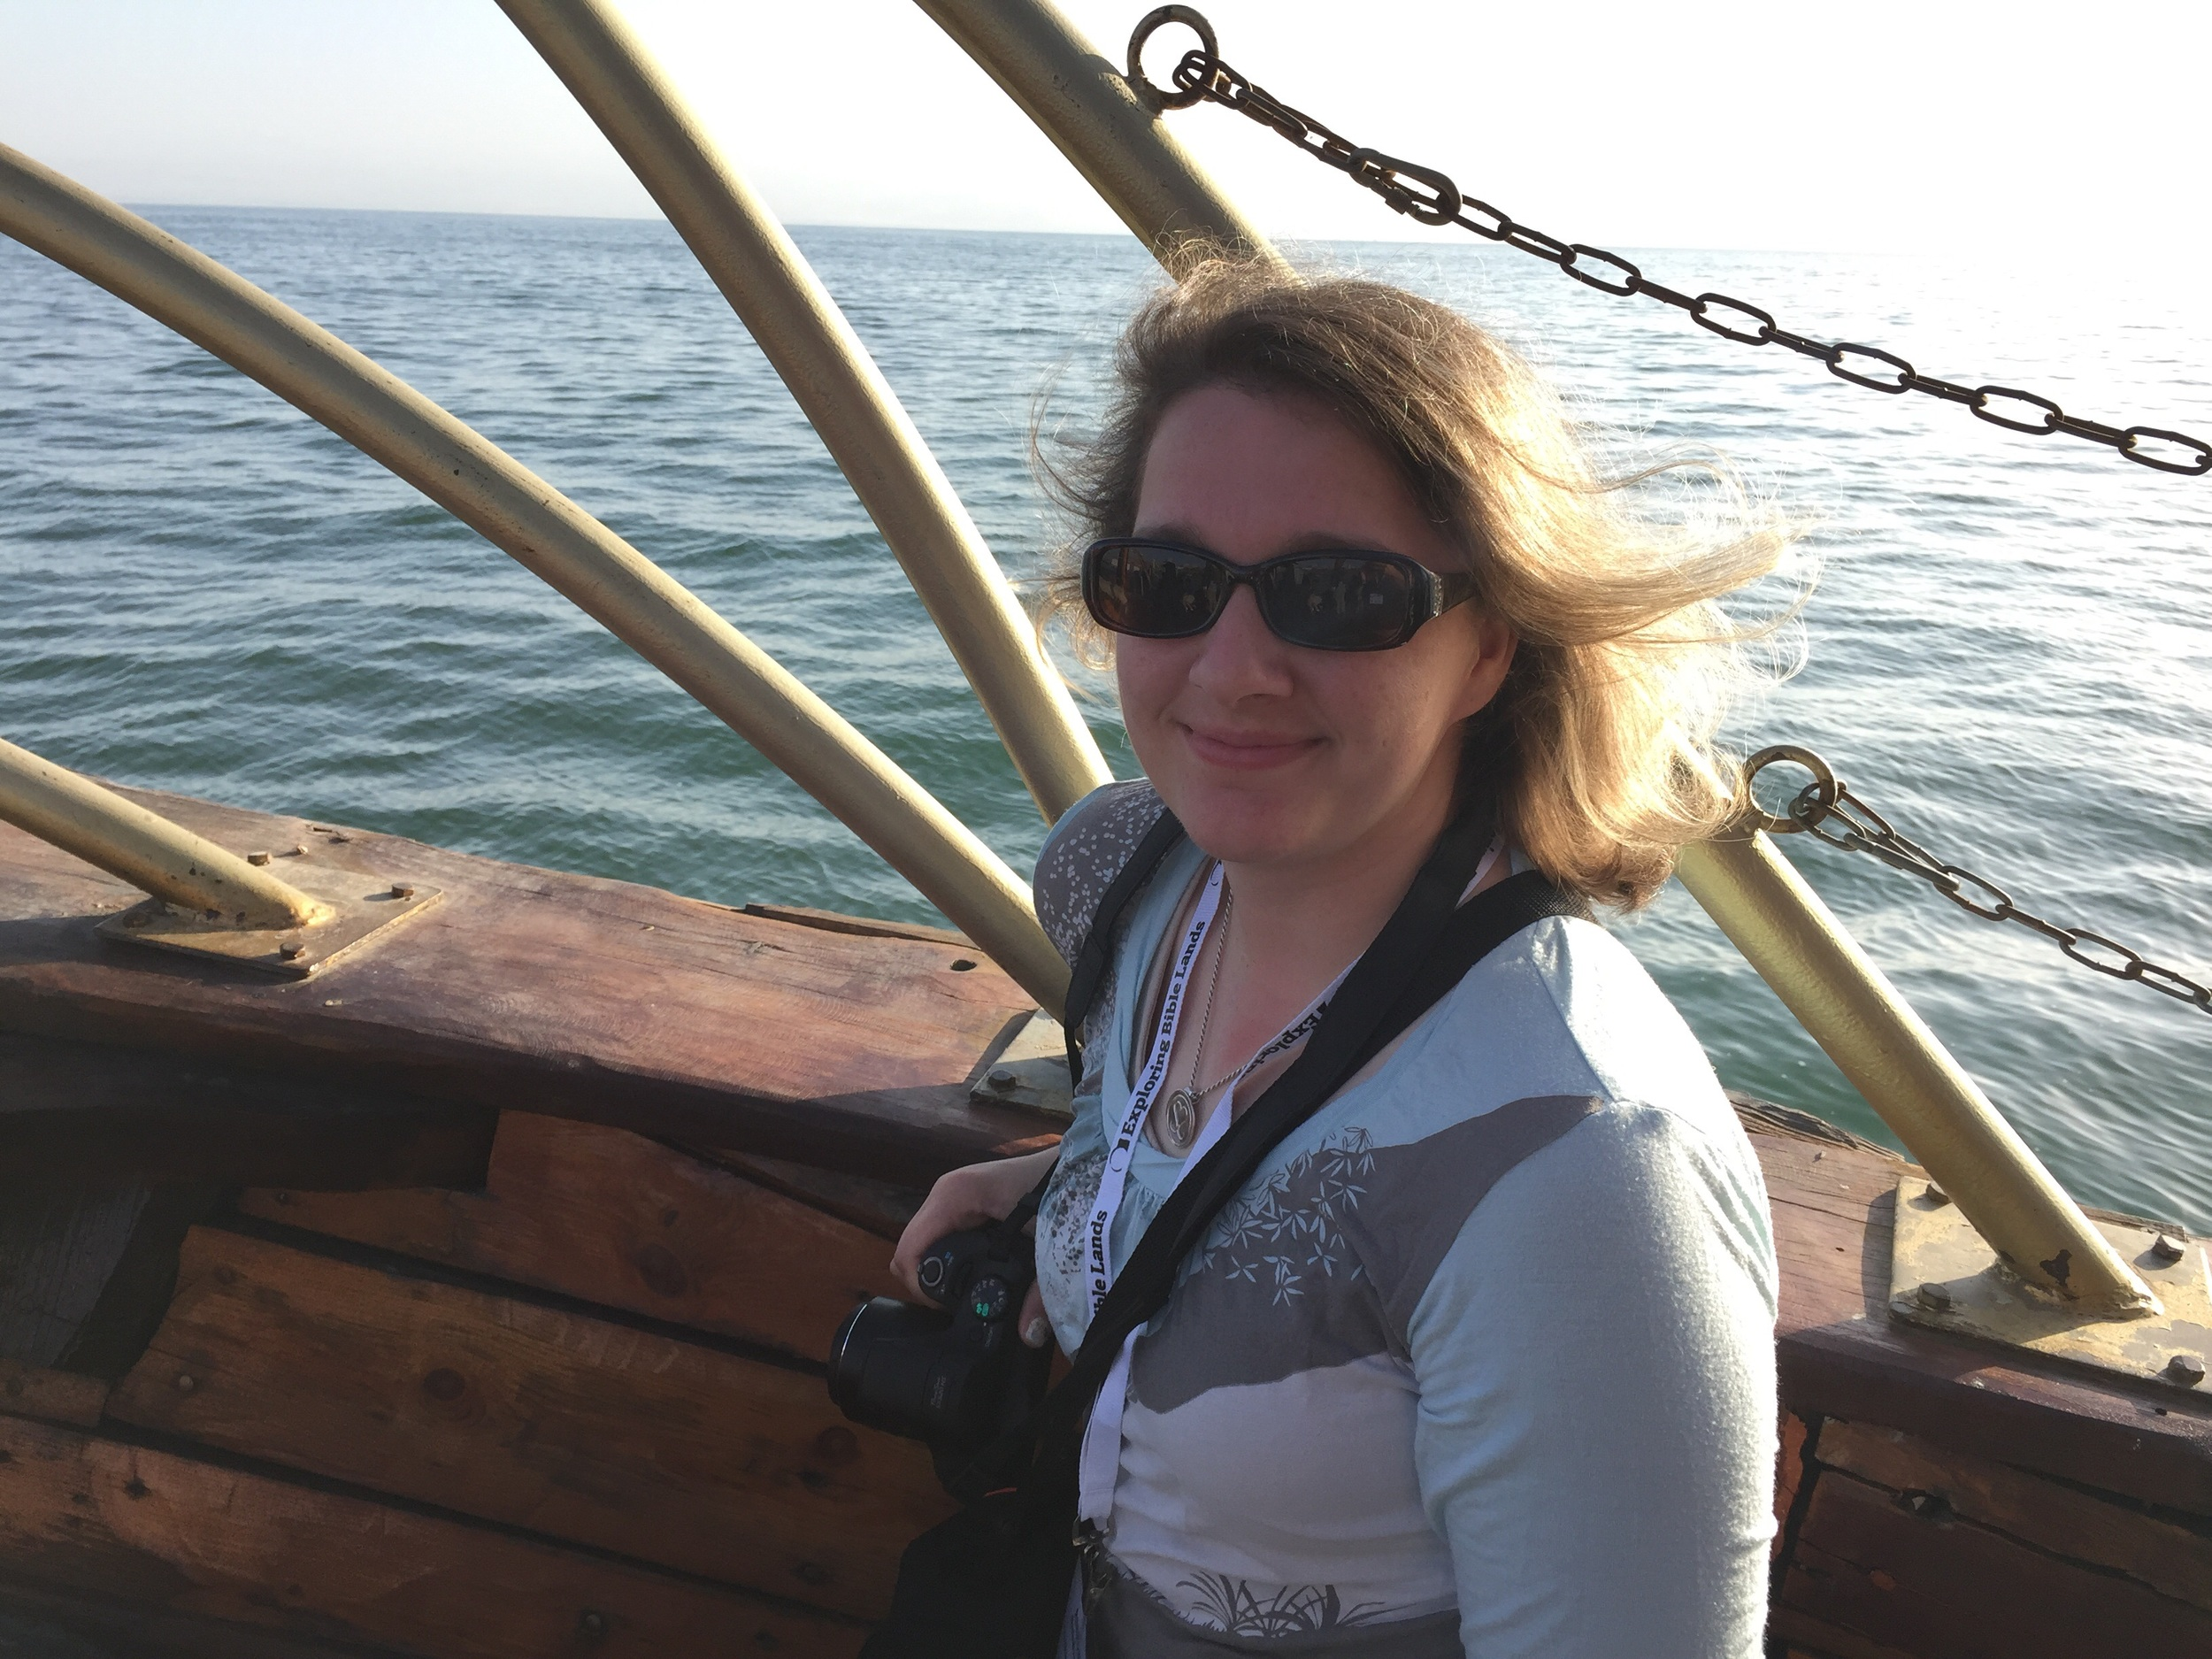 Anna enjoying being on the Sea of Galilee.